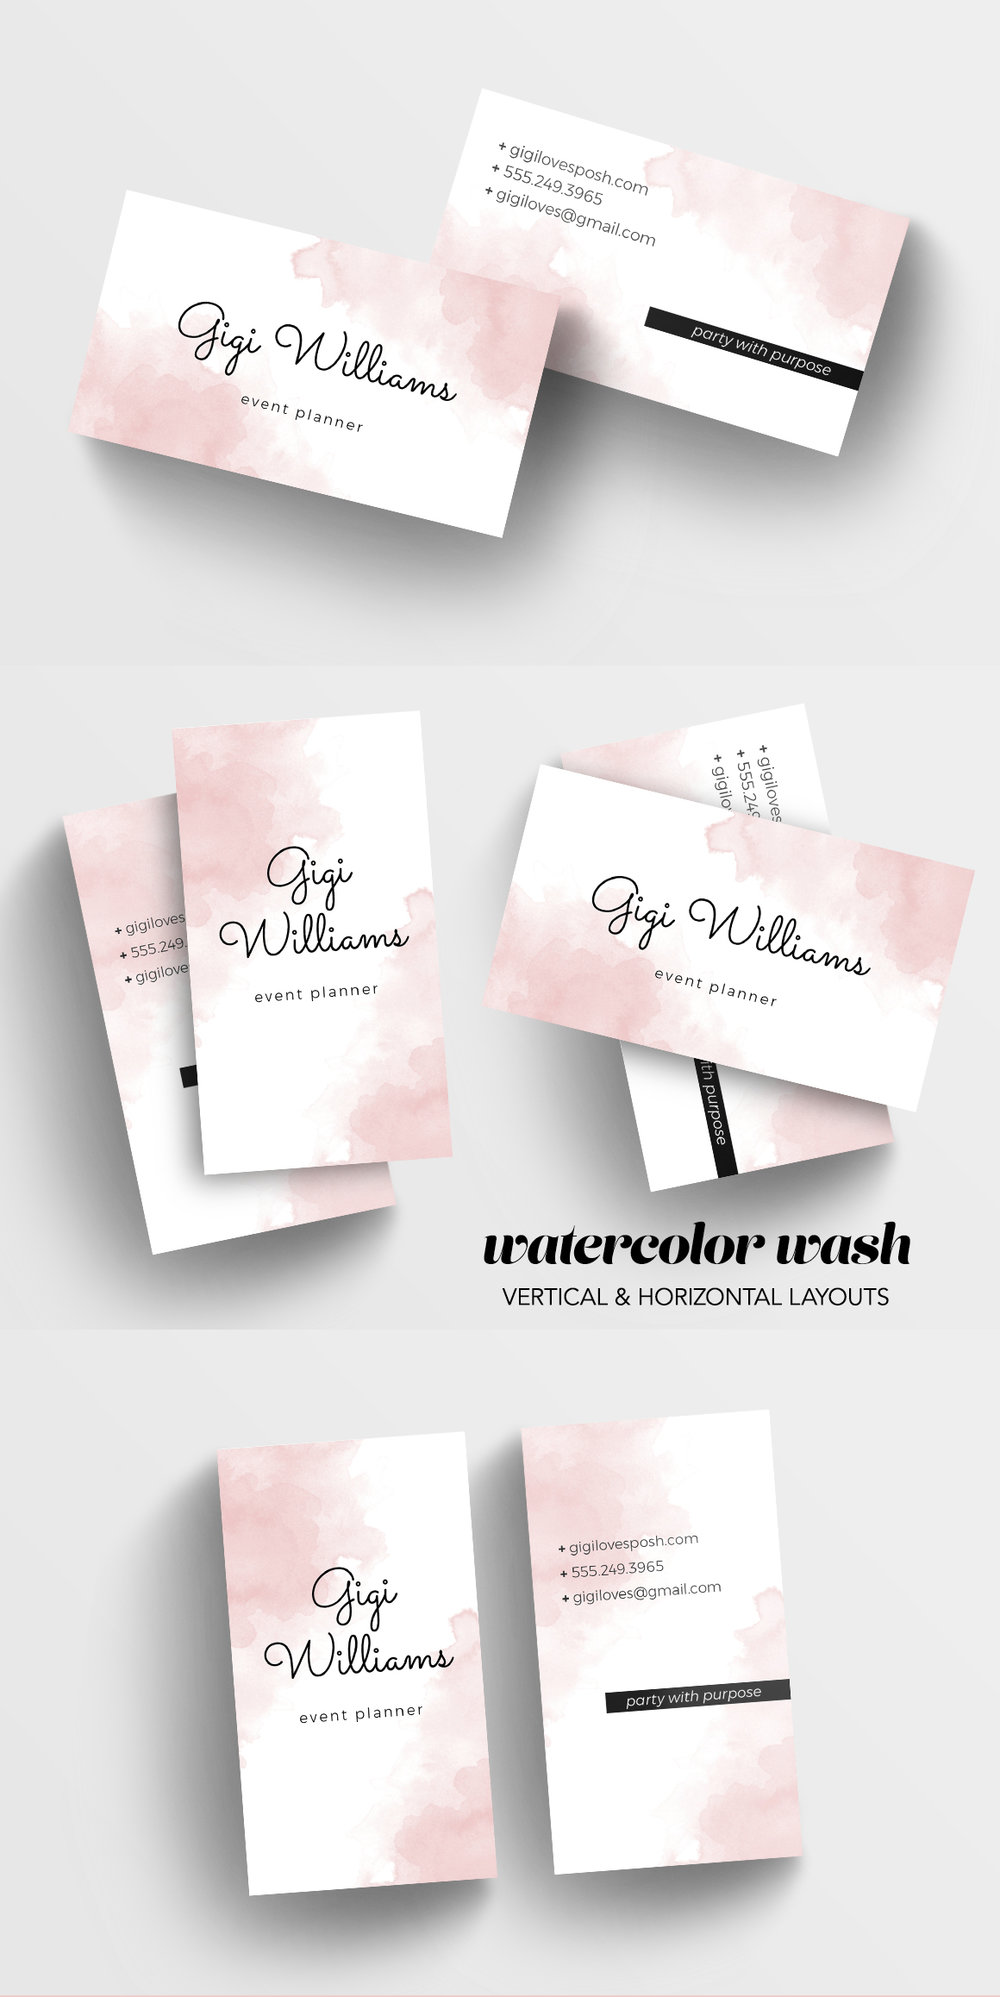 watercolor wash business card template — charming ink